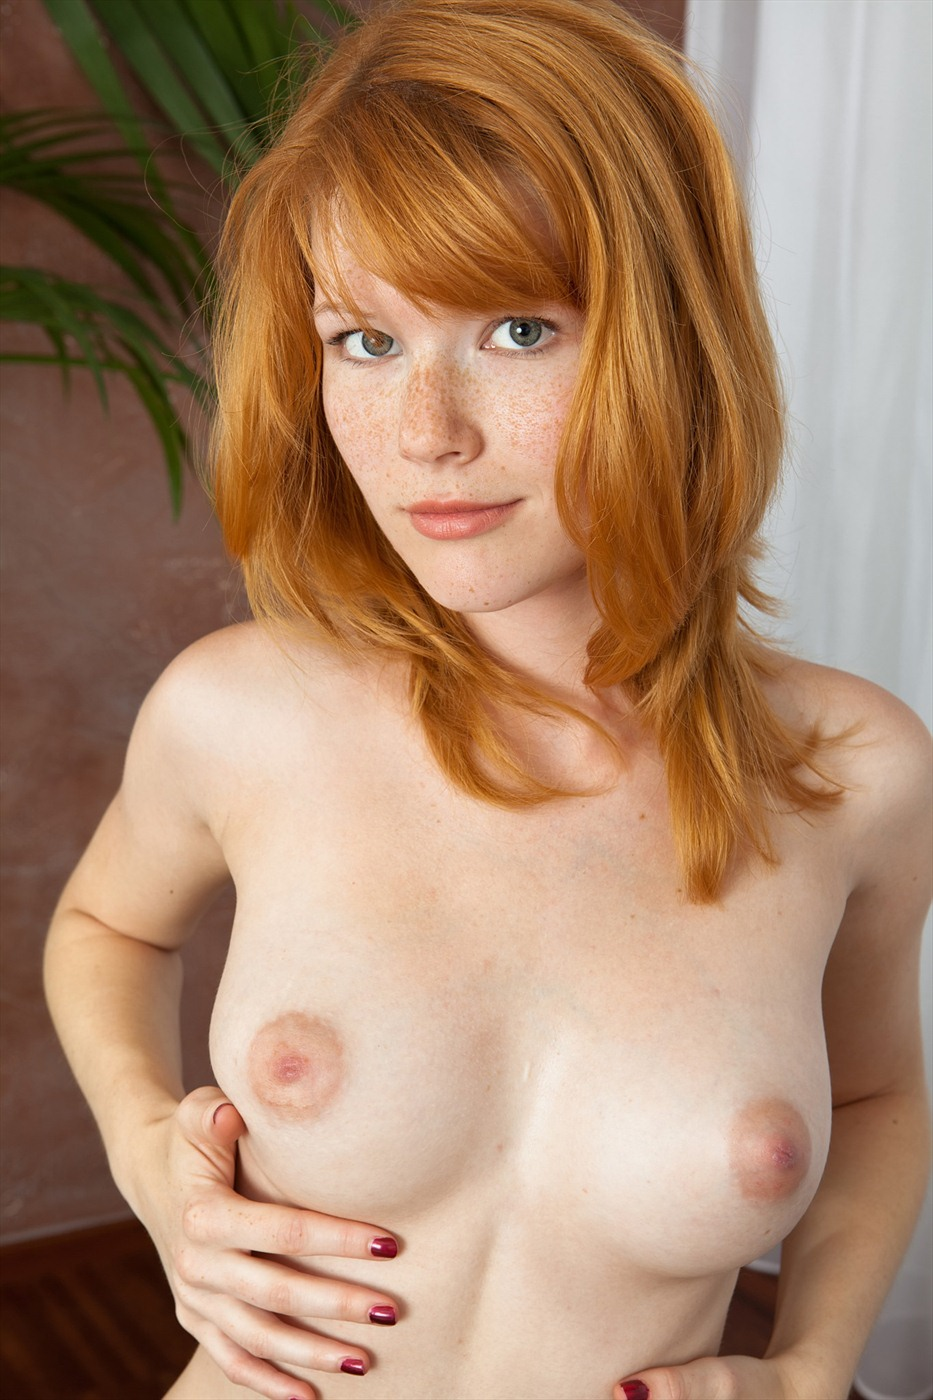 Are not Redhead irish girl nude